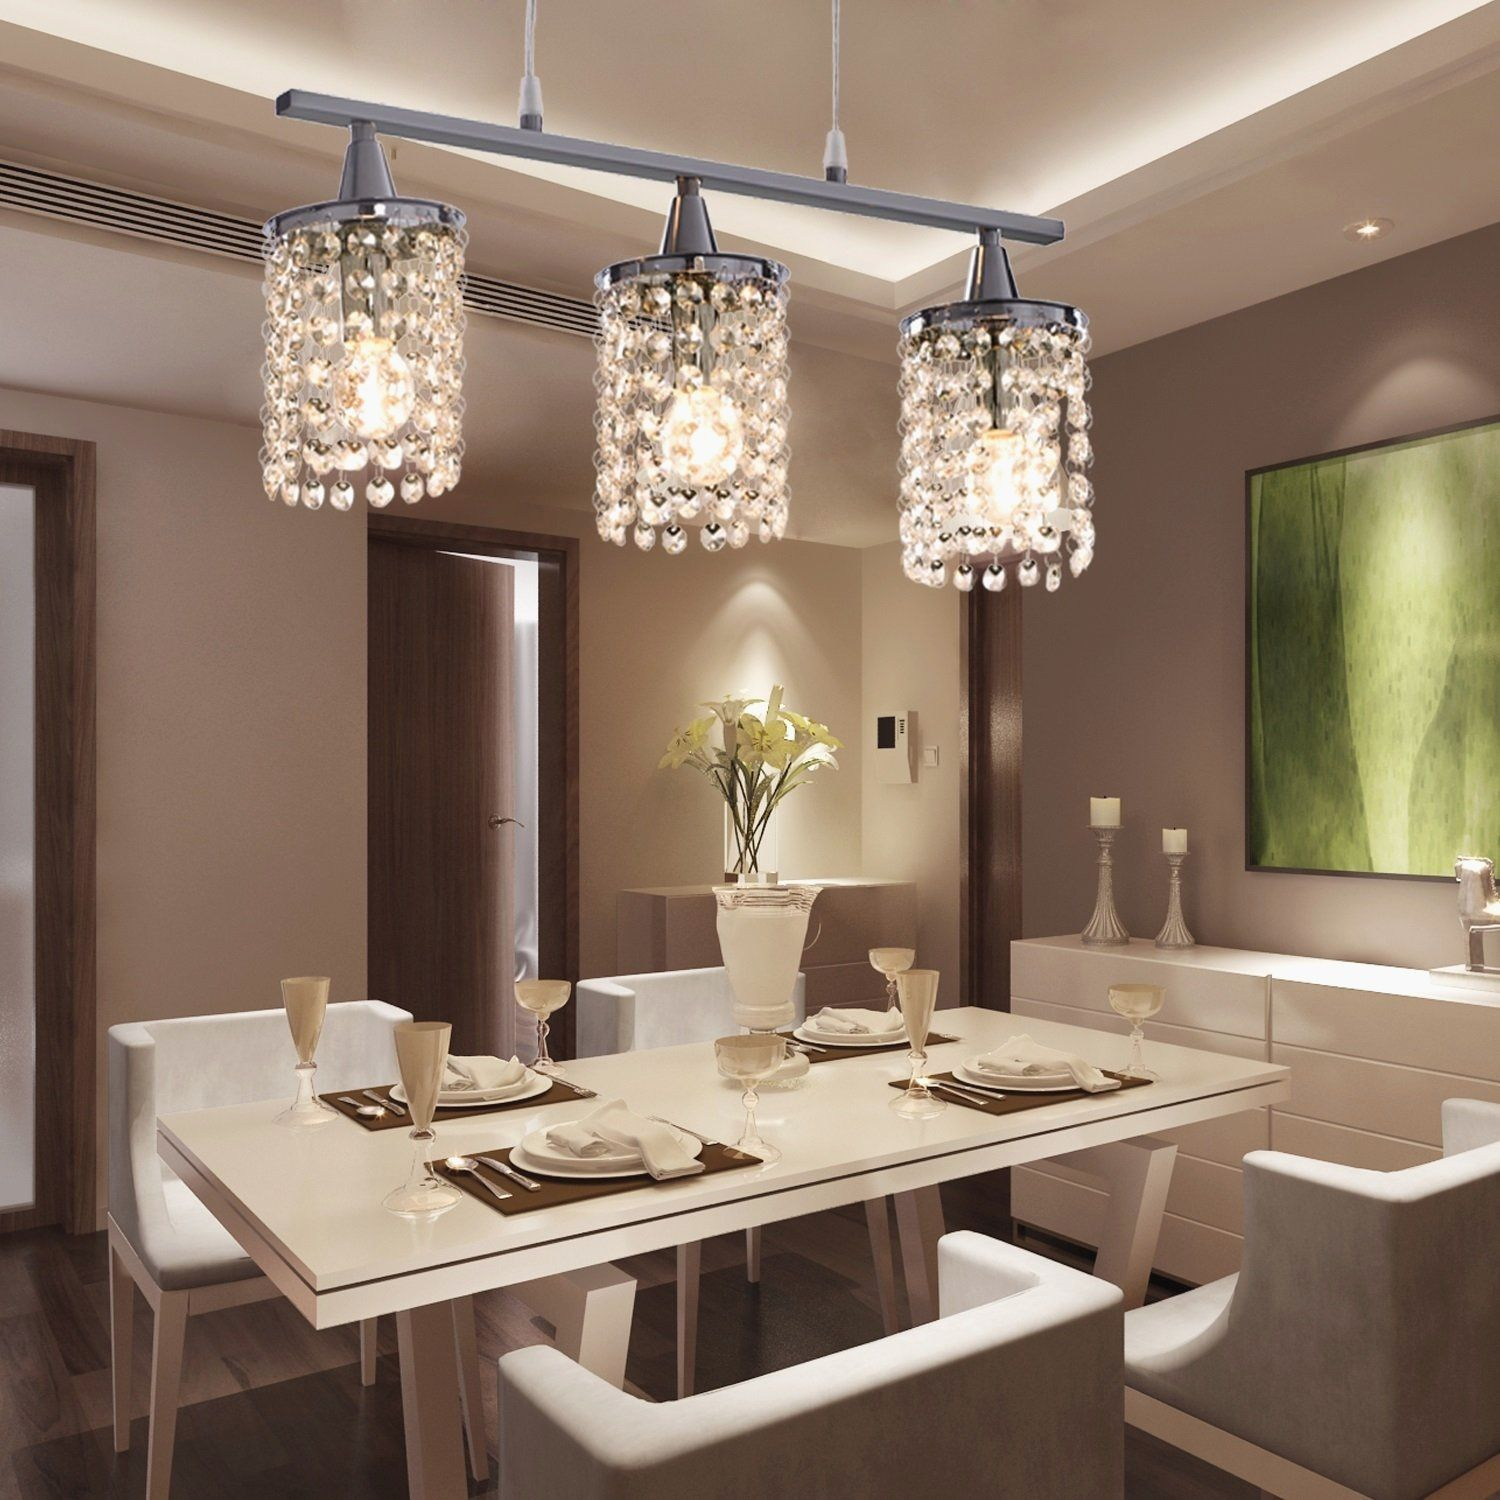 30 Best Dining Room Lighting Ideas Luckythink Contemporary Dining Room Lighting Dining Room Lighting Modern Dining Room Light Fixtures